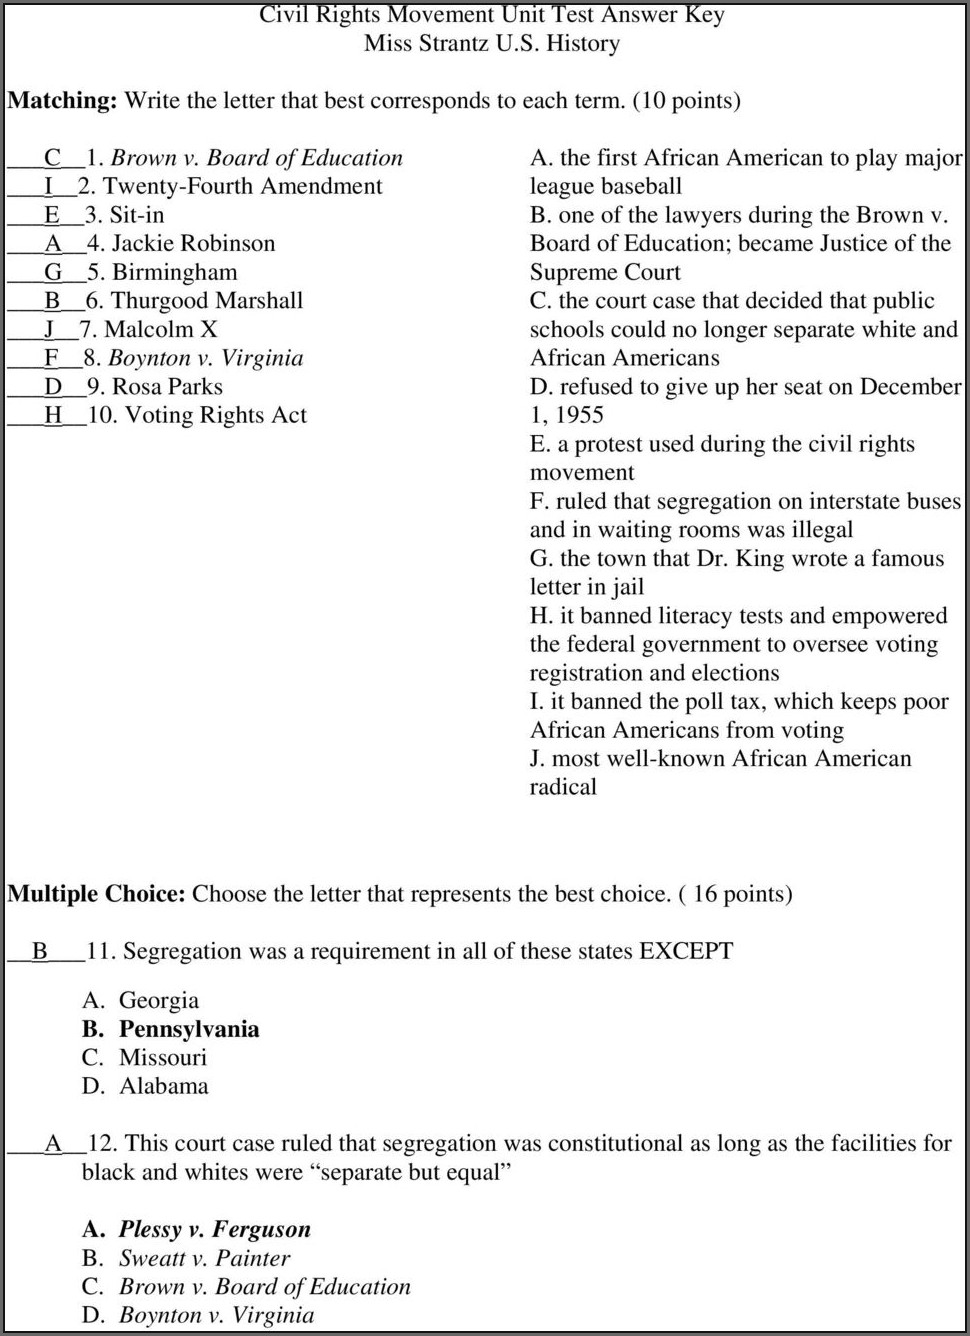 Voting Rights Timeline Match Up Worksheet Answers